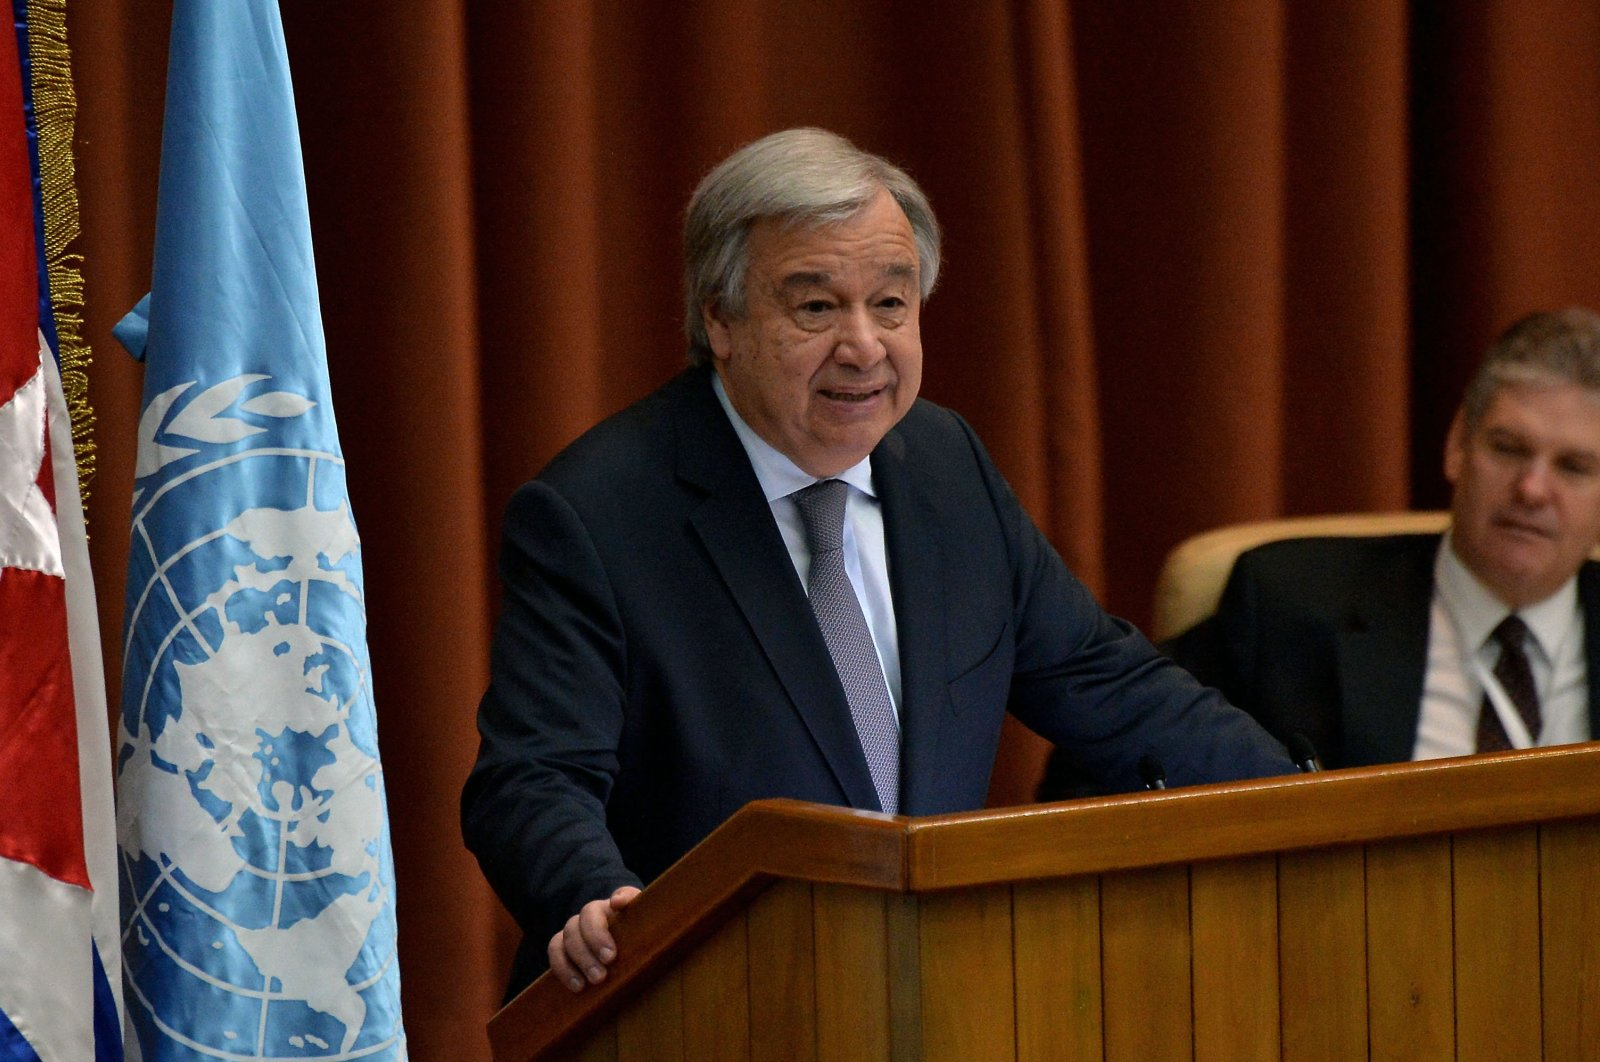 Antonio Guterres, secretary-general of the United Nations, delivers a speech during the inauguration of the 37th Session of the U.N. Economic Commission for Latin America and the Caribbean (CEPAL), at the Convention Palace in Havana, Cuba, May 8, 2018. (AFP Photo)